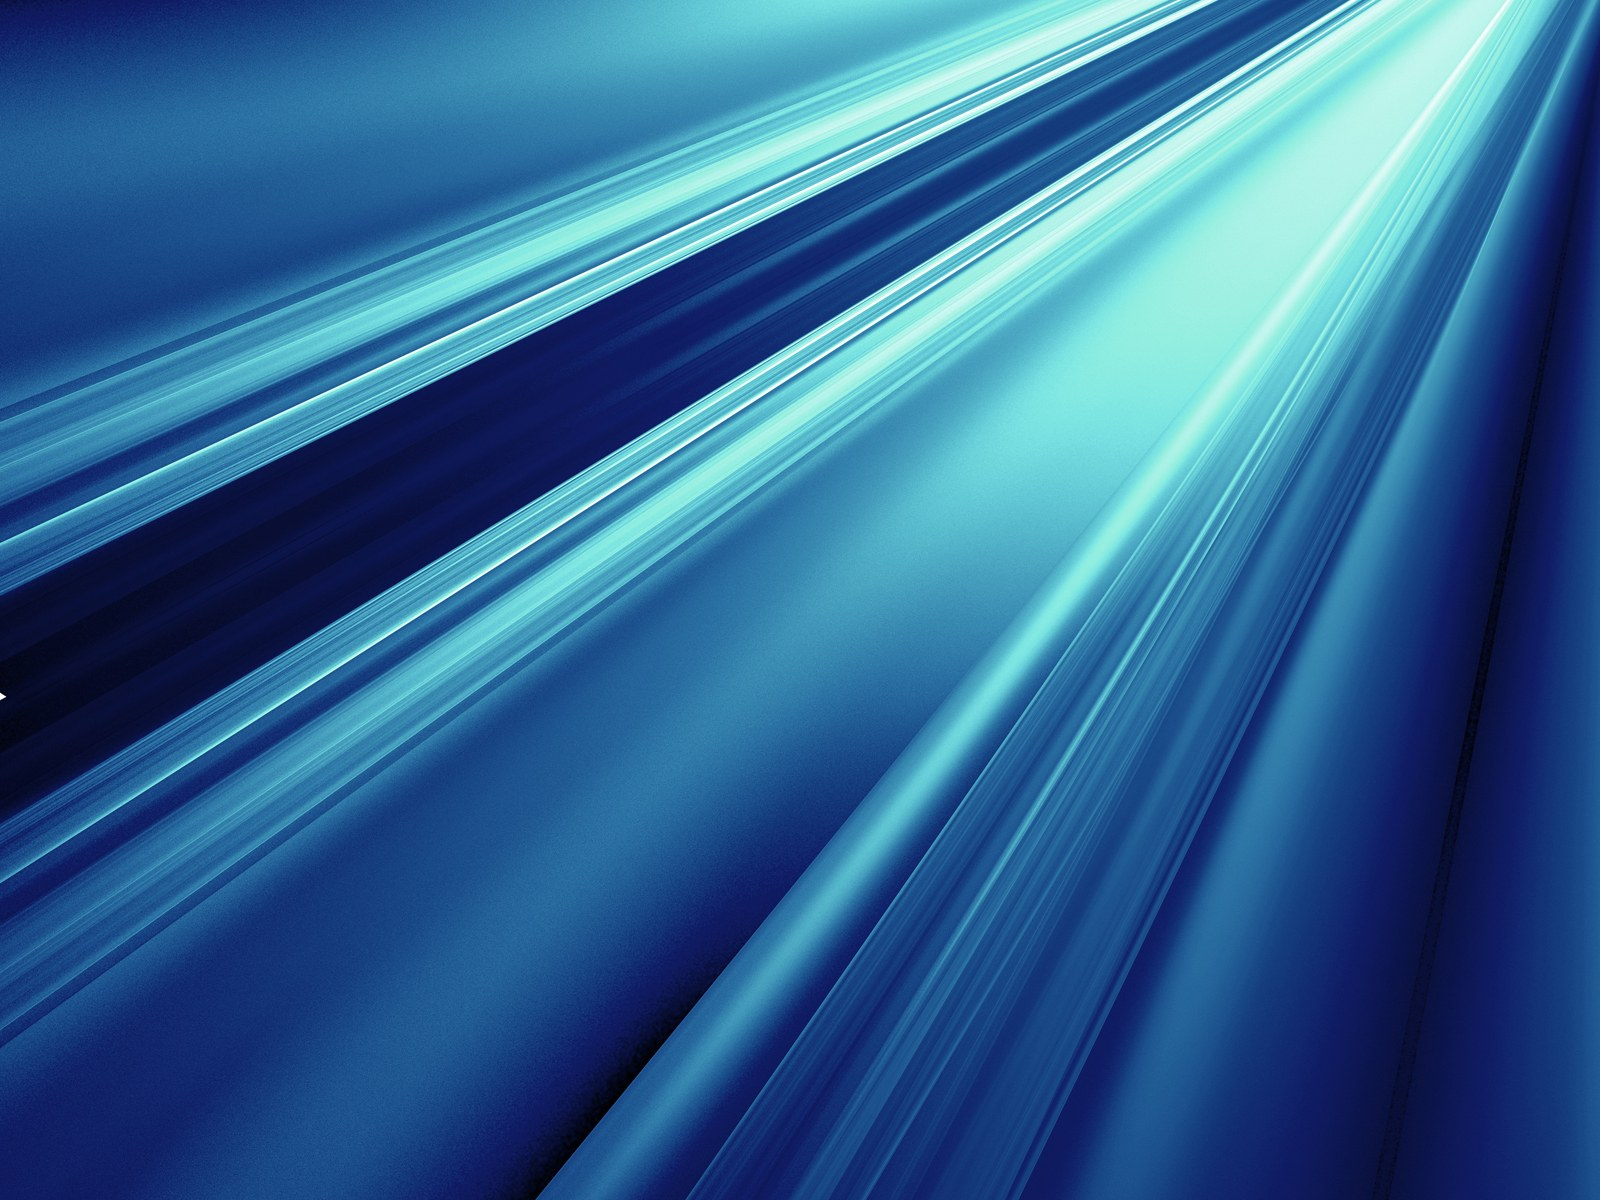 HD Abstract Blue Background - Blue Abstract Light Effect 1600*1200 NO ...